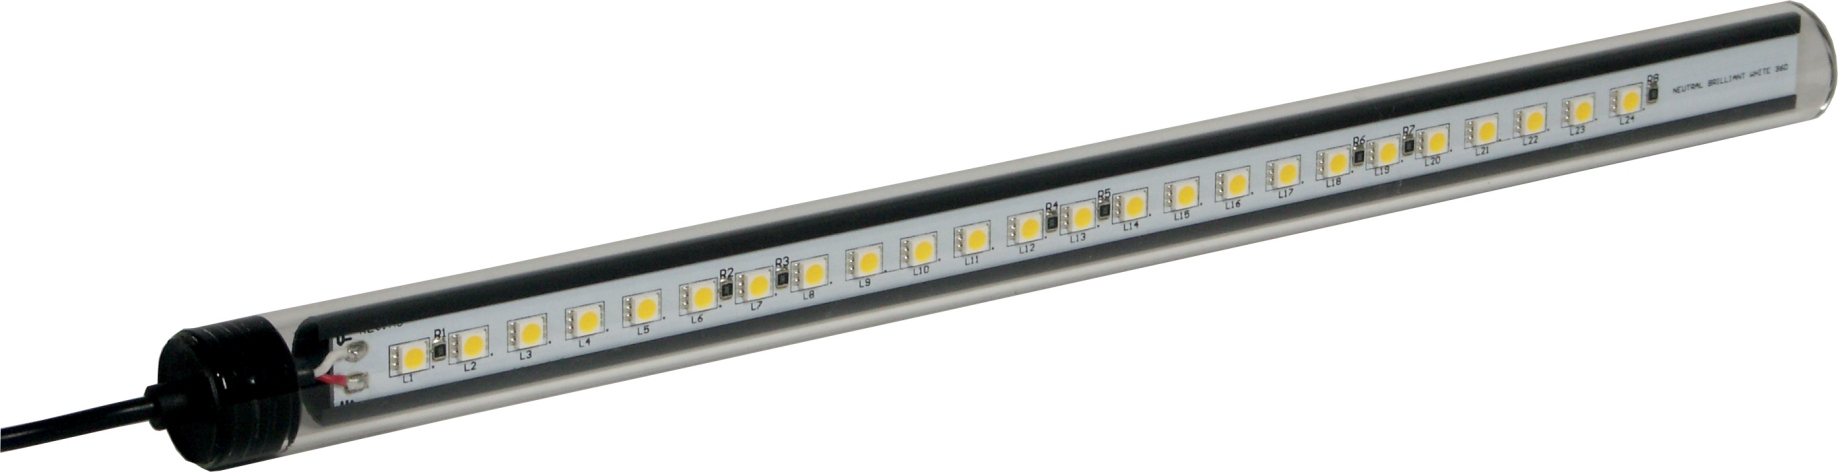 Shop sera LED X-Change Tube neutral brilliant white